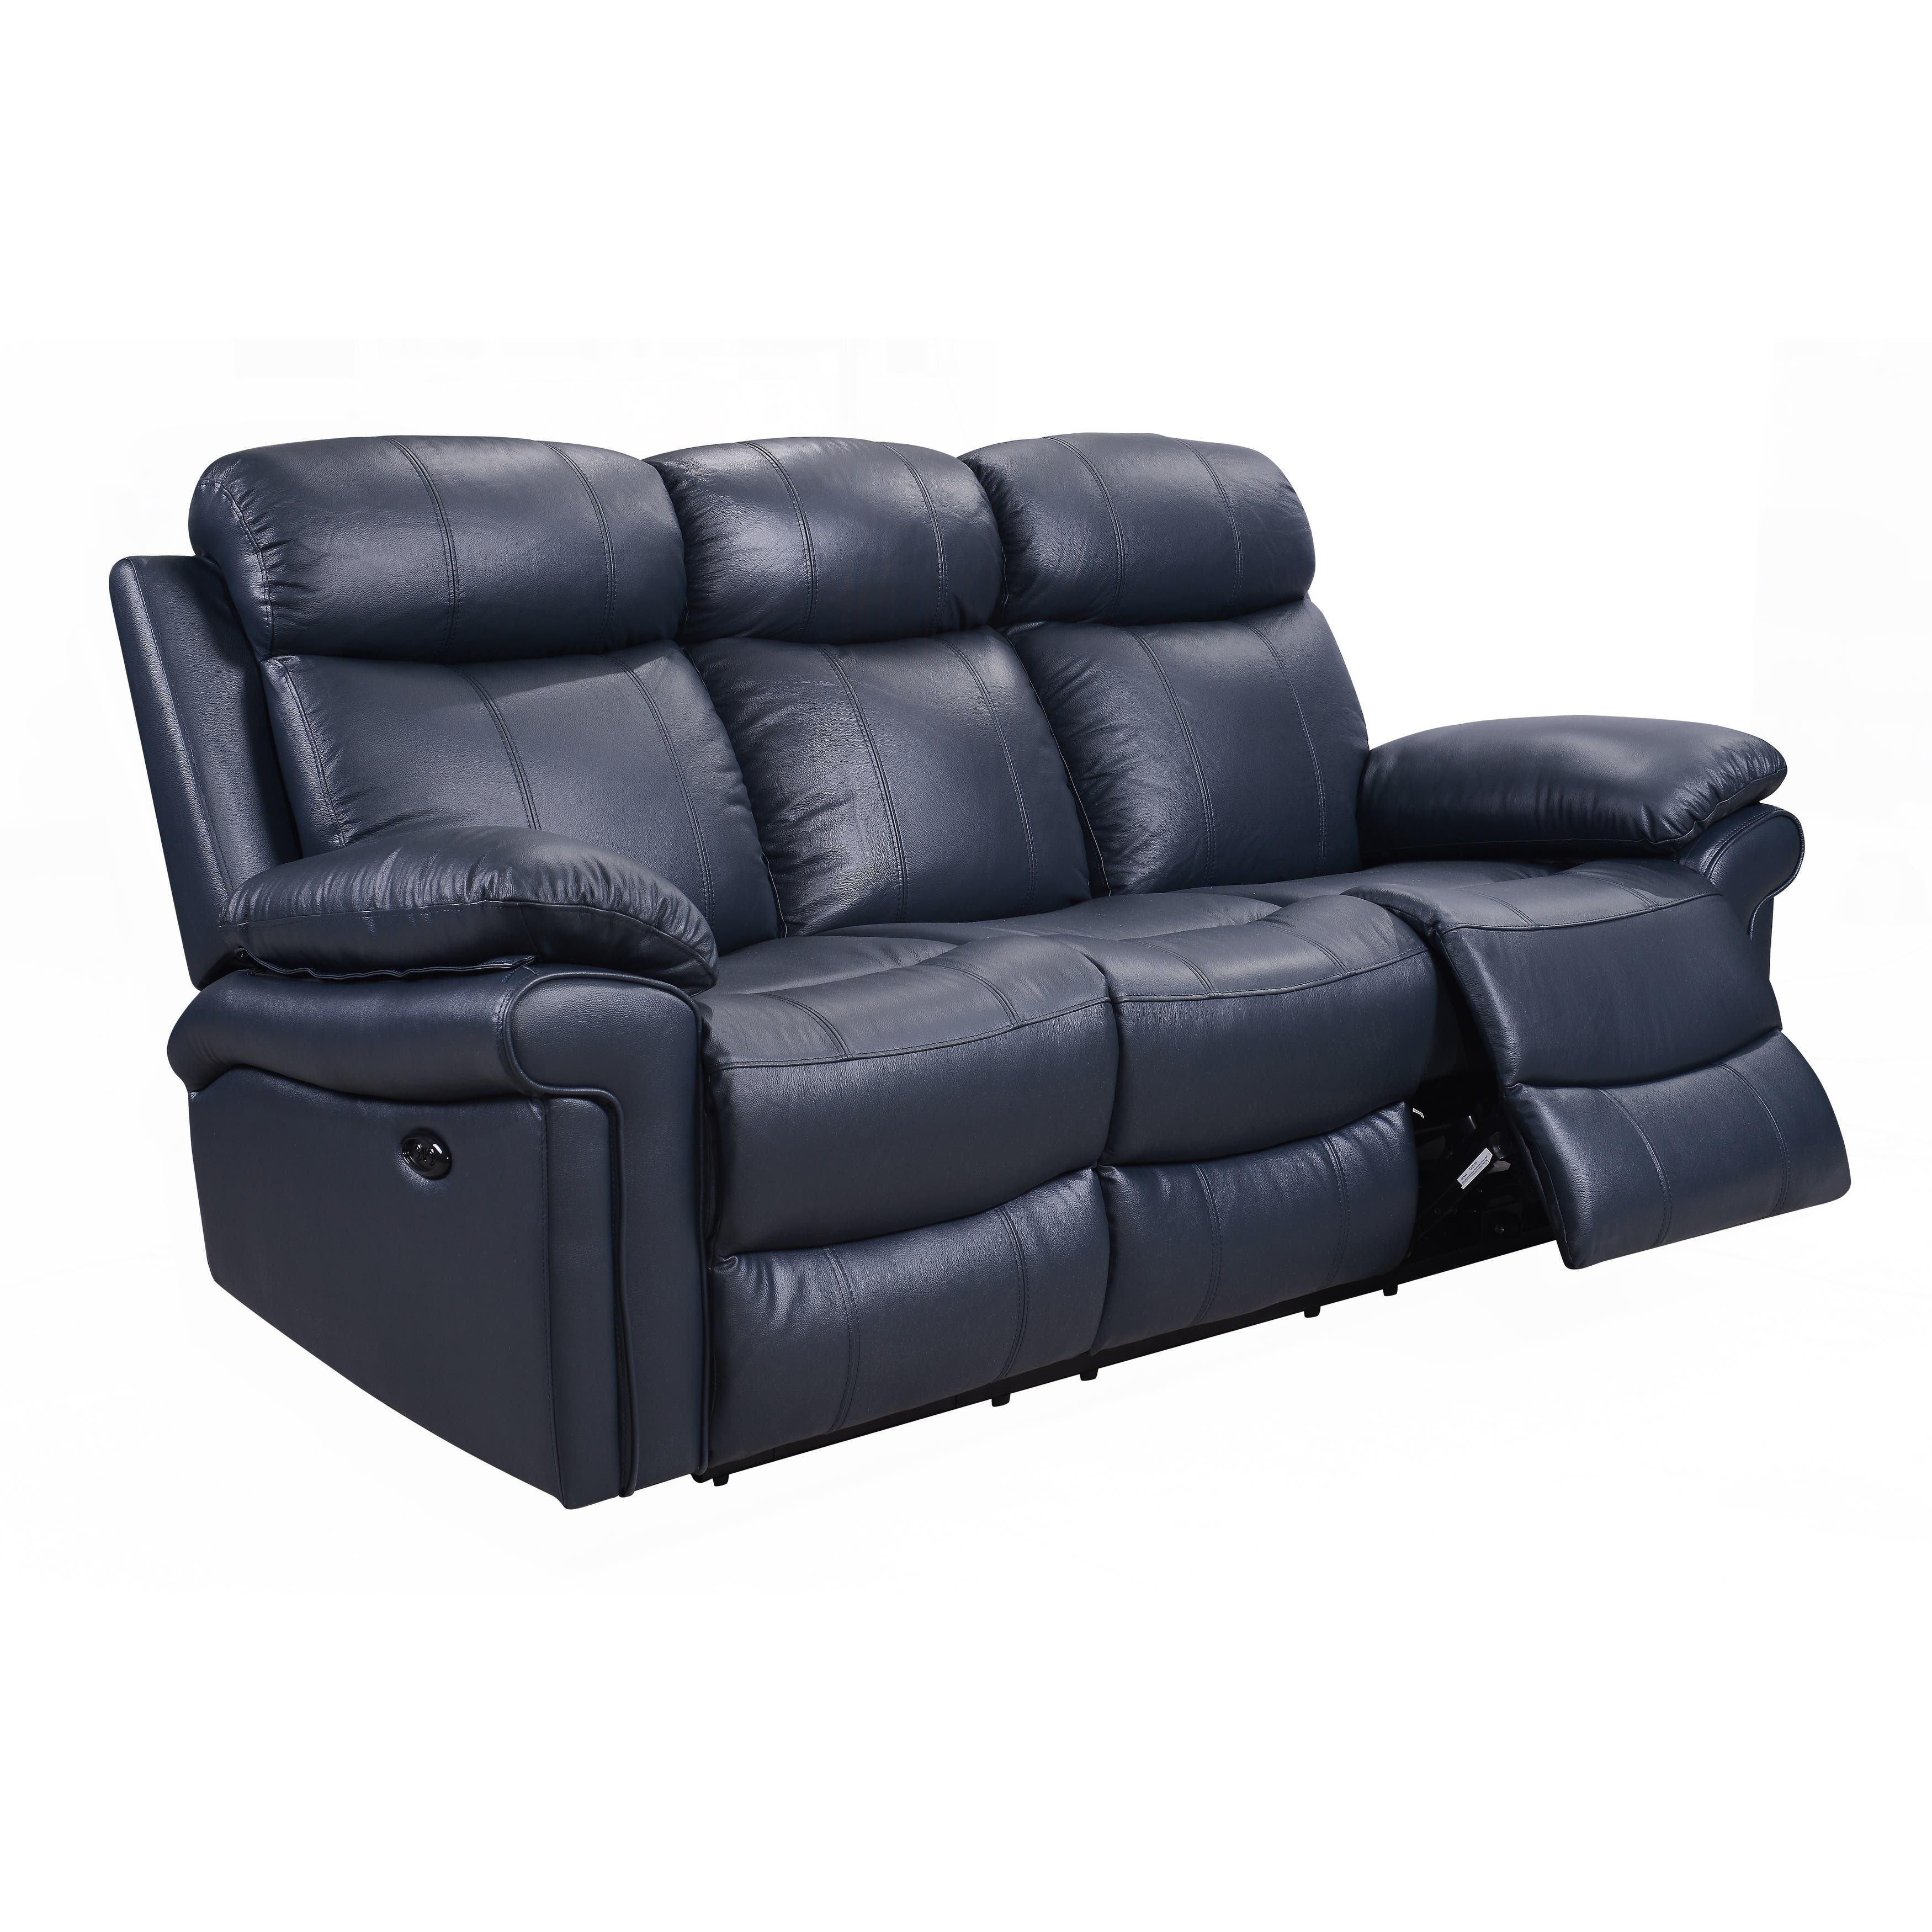 Sofas couches loveseats for less for Blue leather reclining sofa